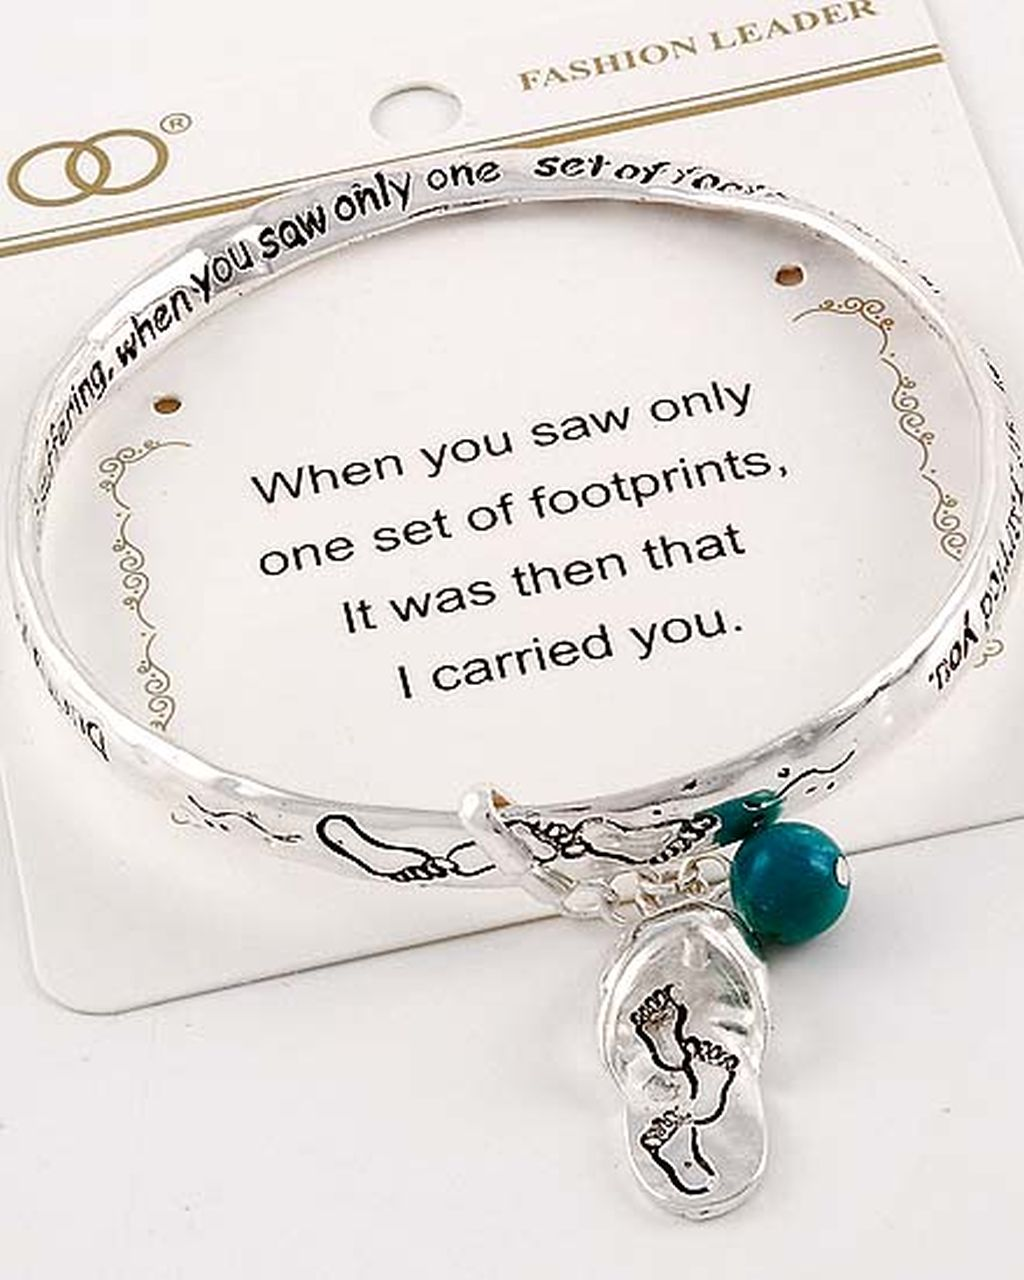 Footprints Charm Bracelet Inspirational Message Twisted Bangle Sliver